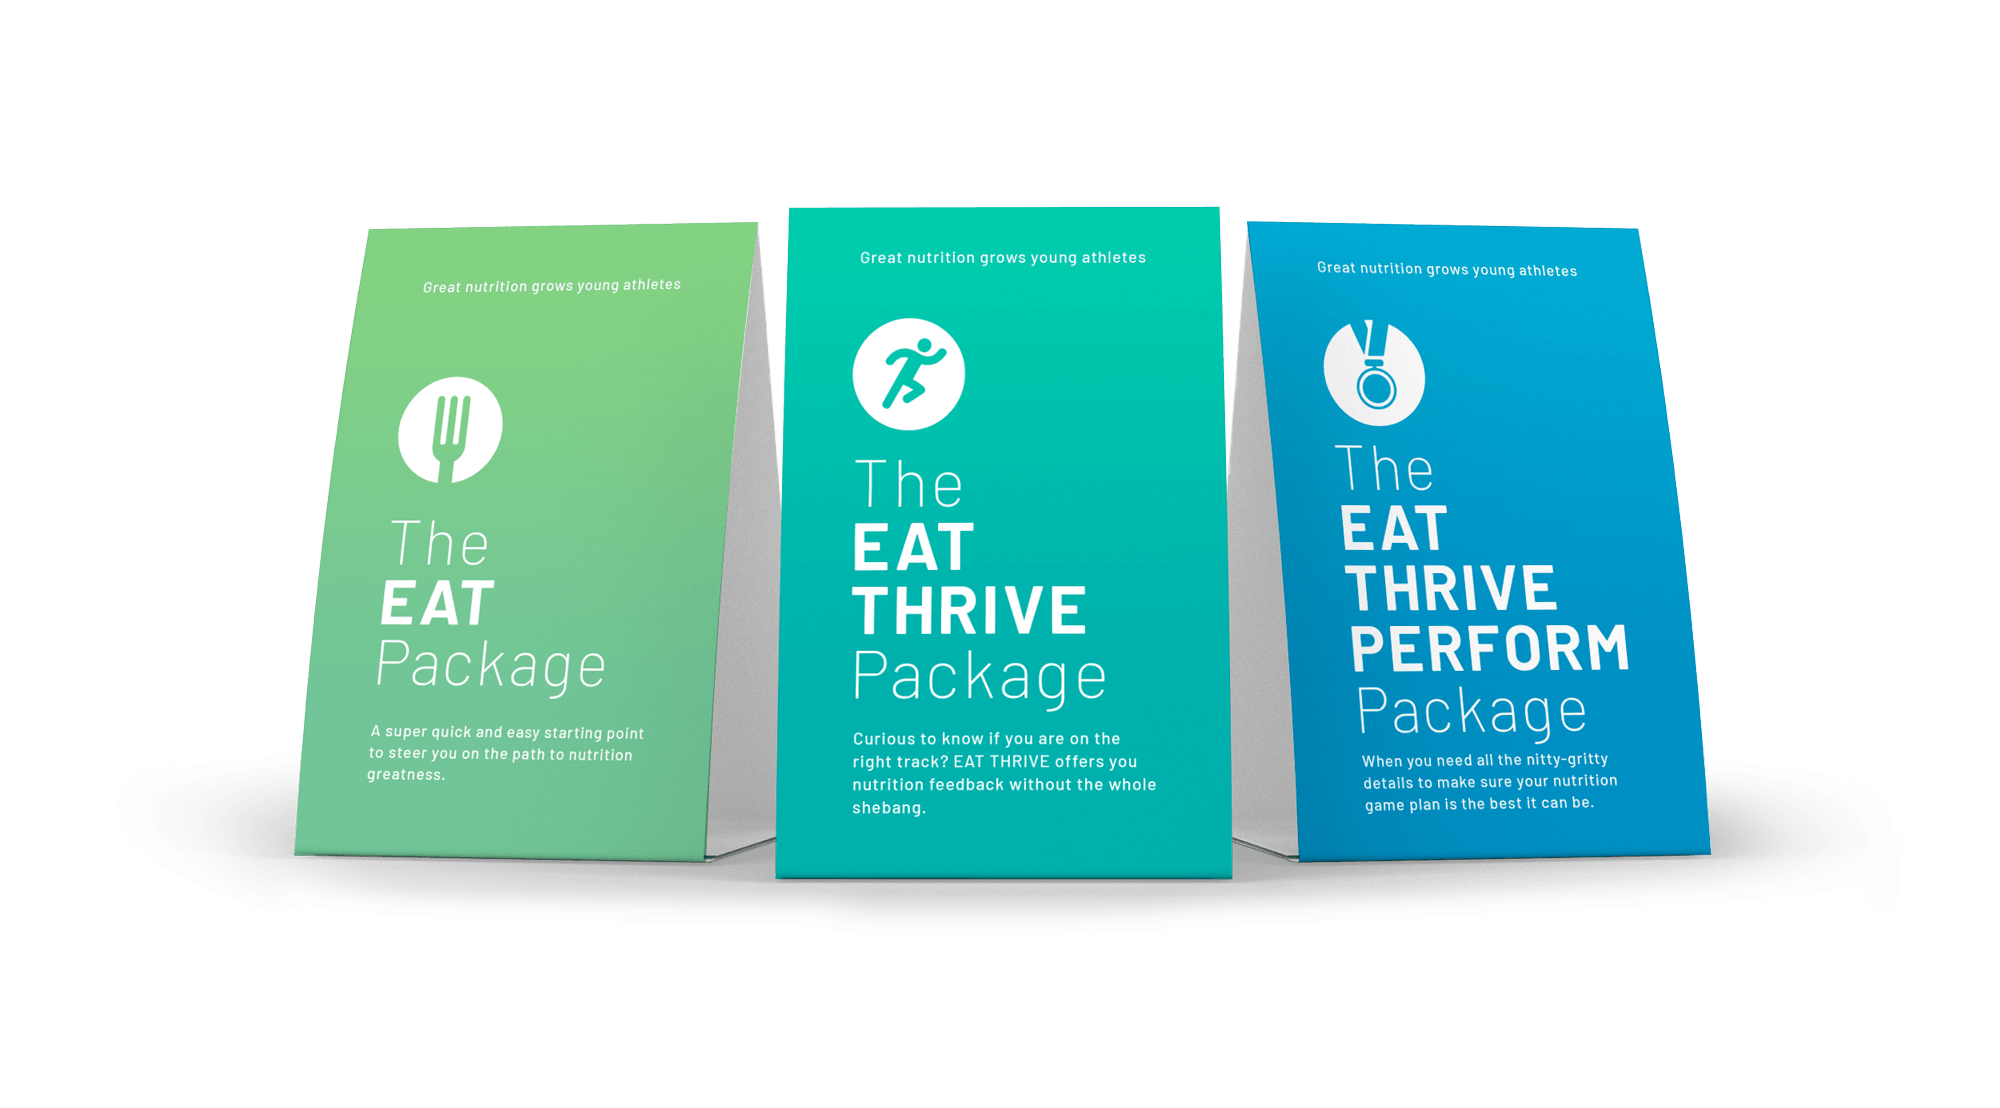 EAT THRIVE PERFORM Packages